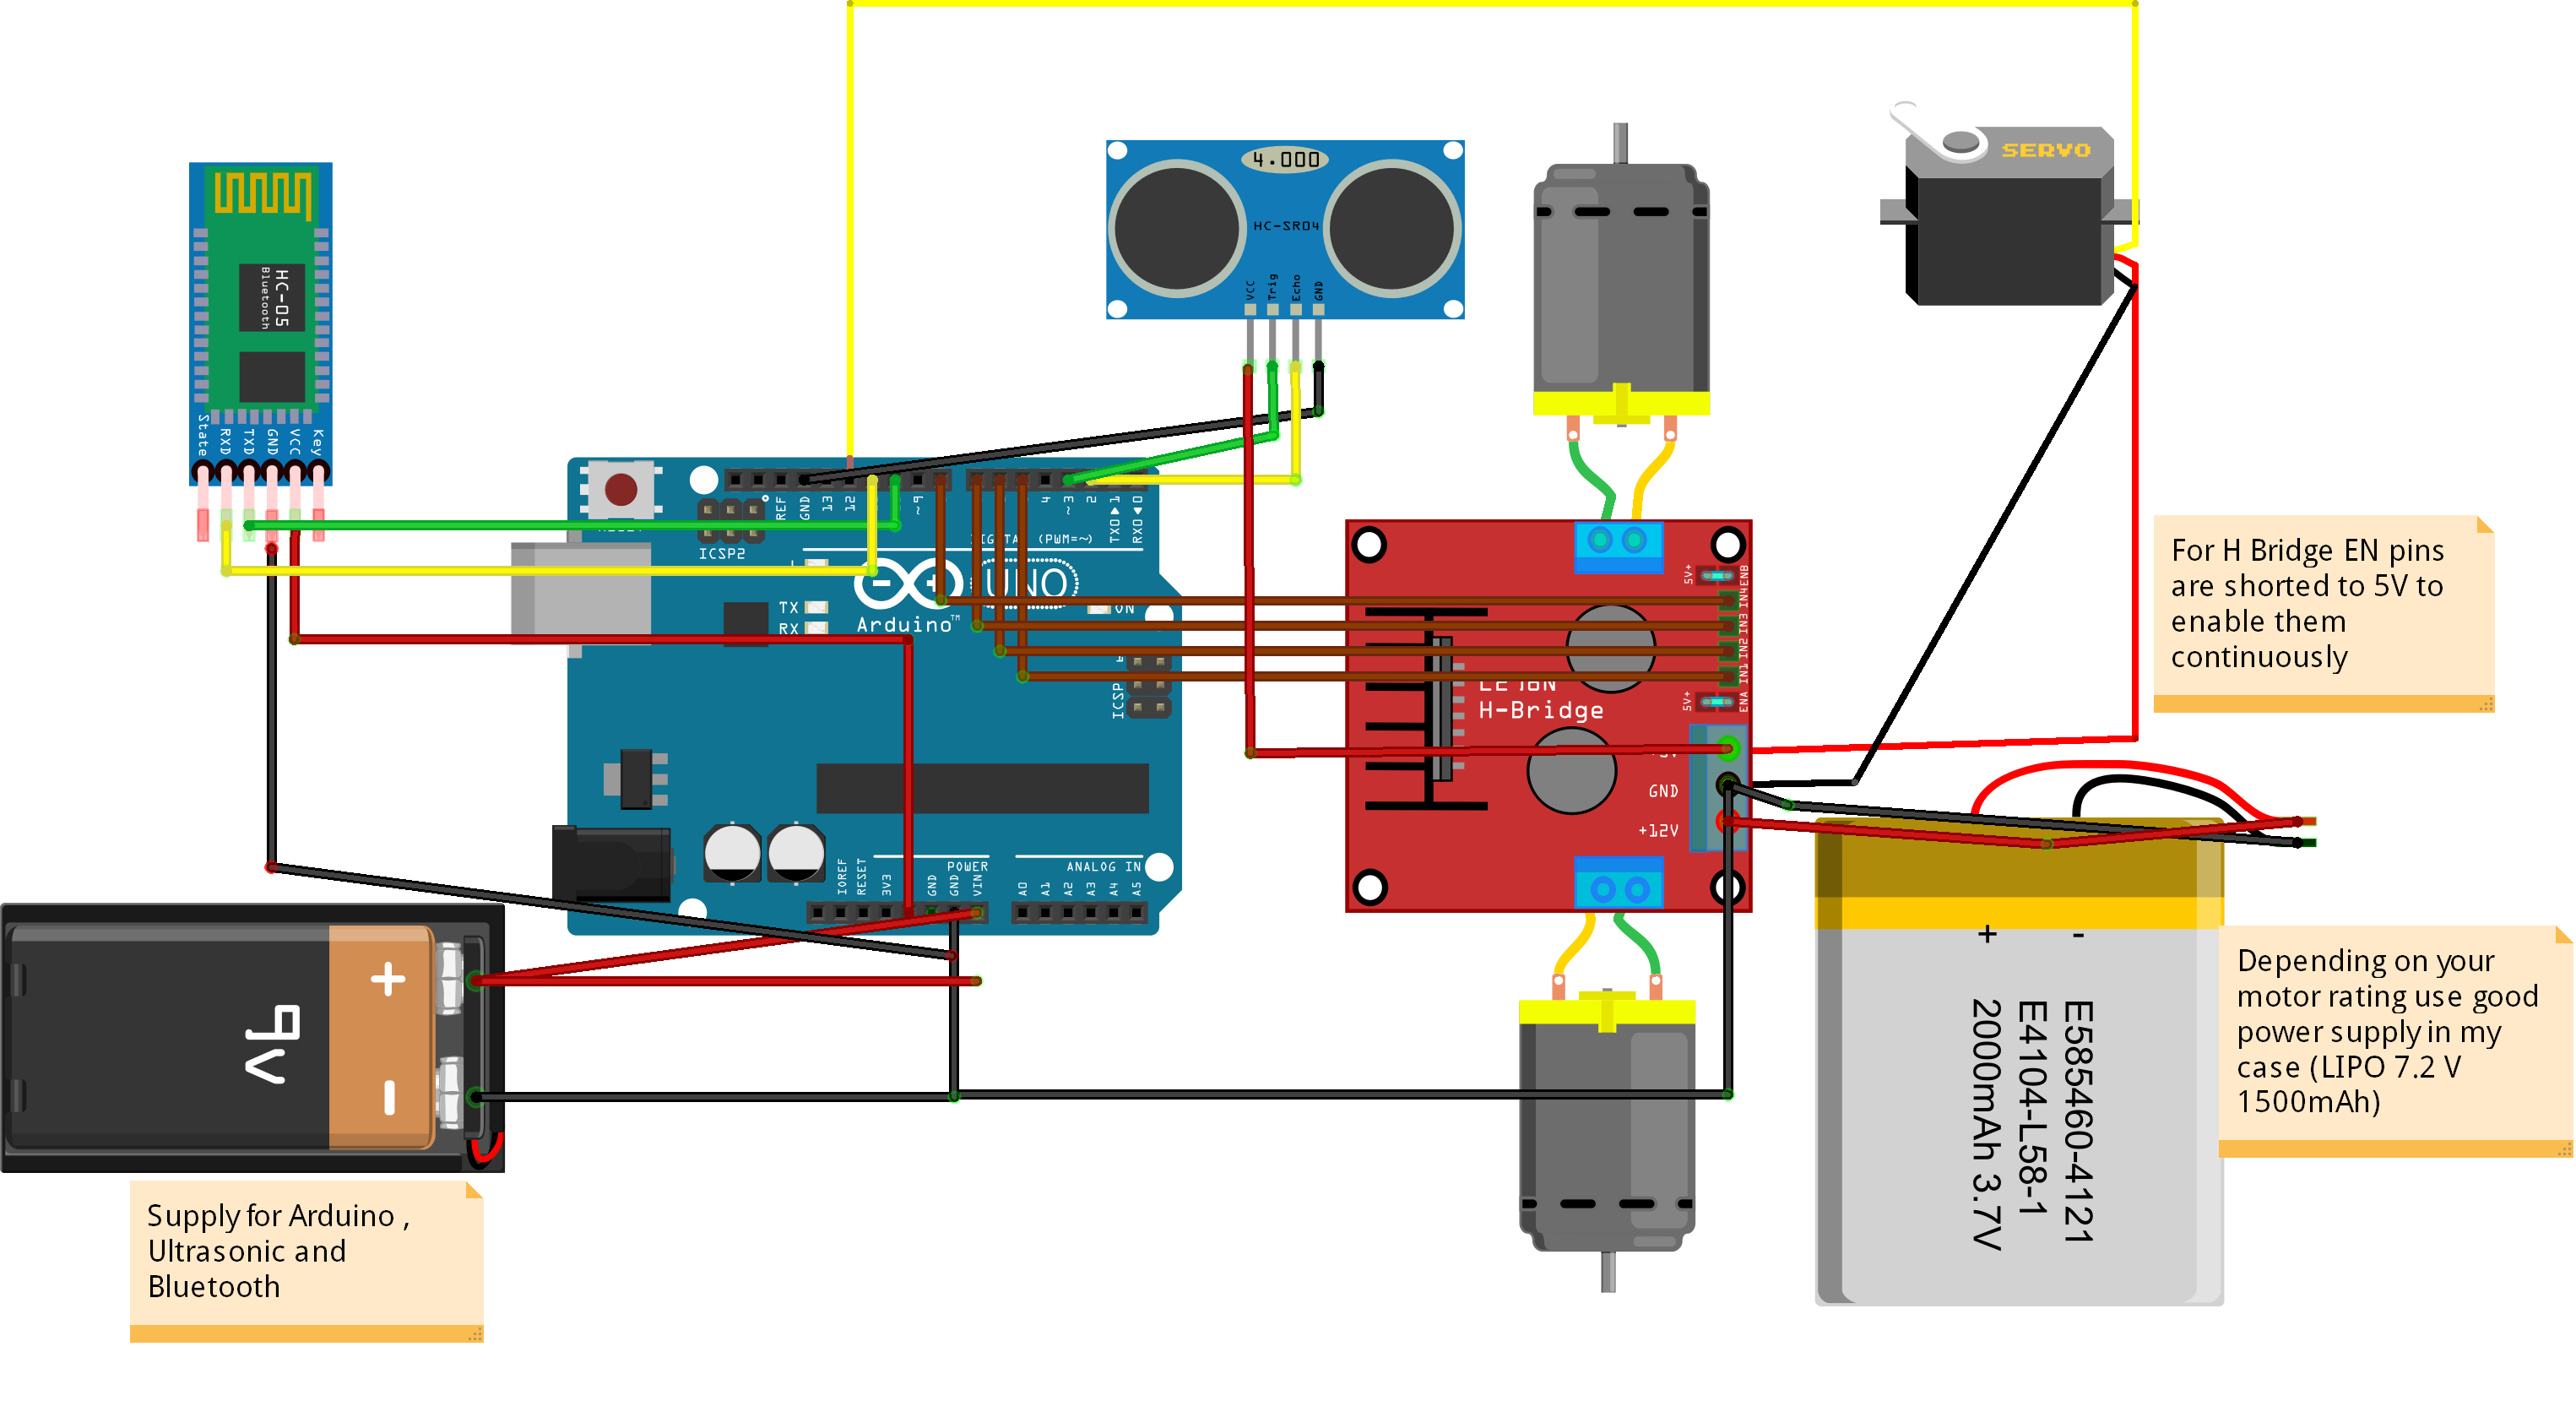 L293d Motor Driver Ic Pin Diagram Block And Schematic Diagrams Two Mode Robot Controlling Through Android Configuration